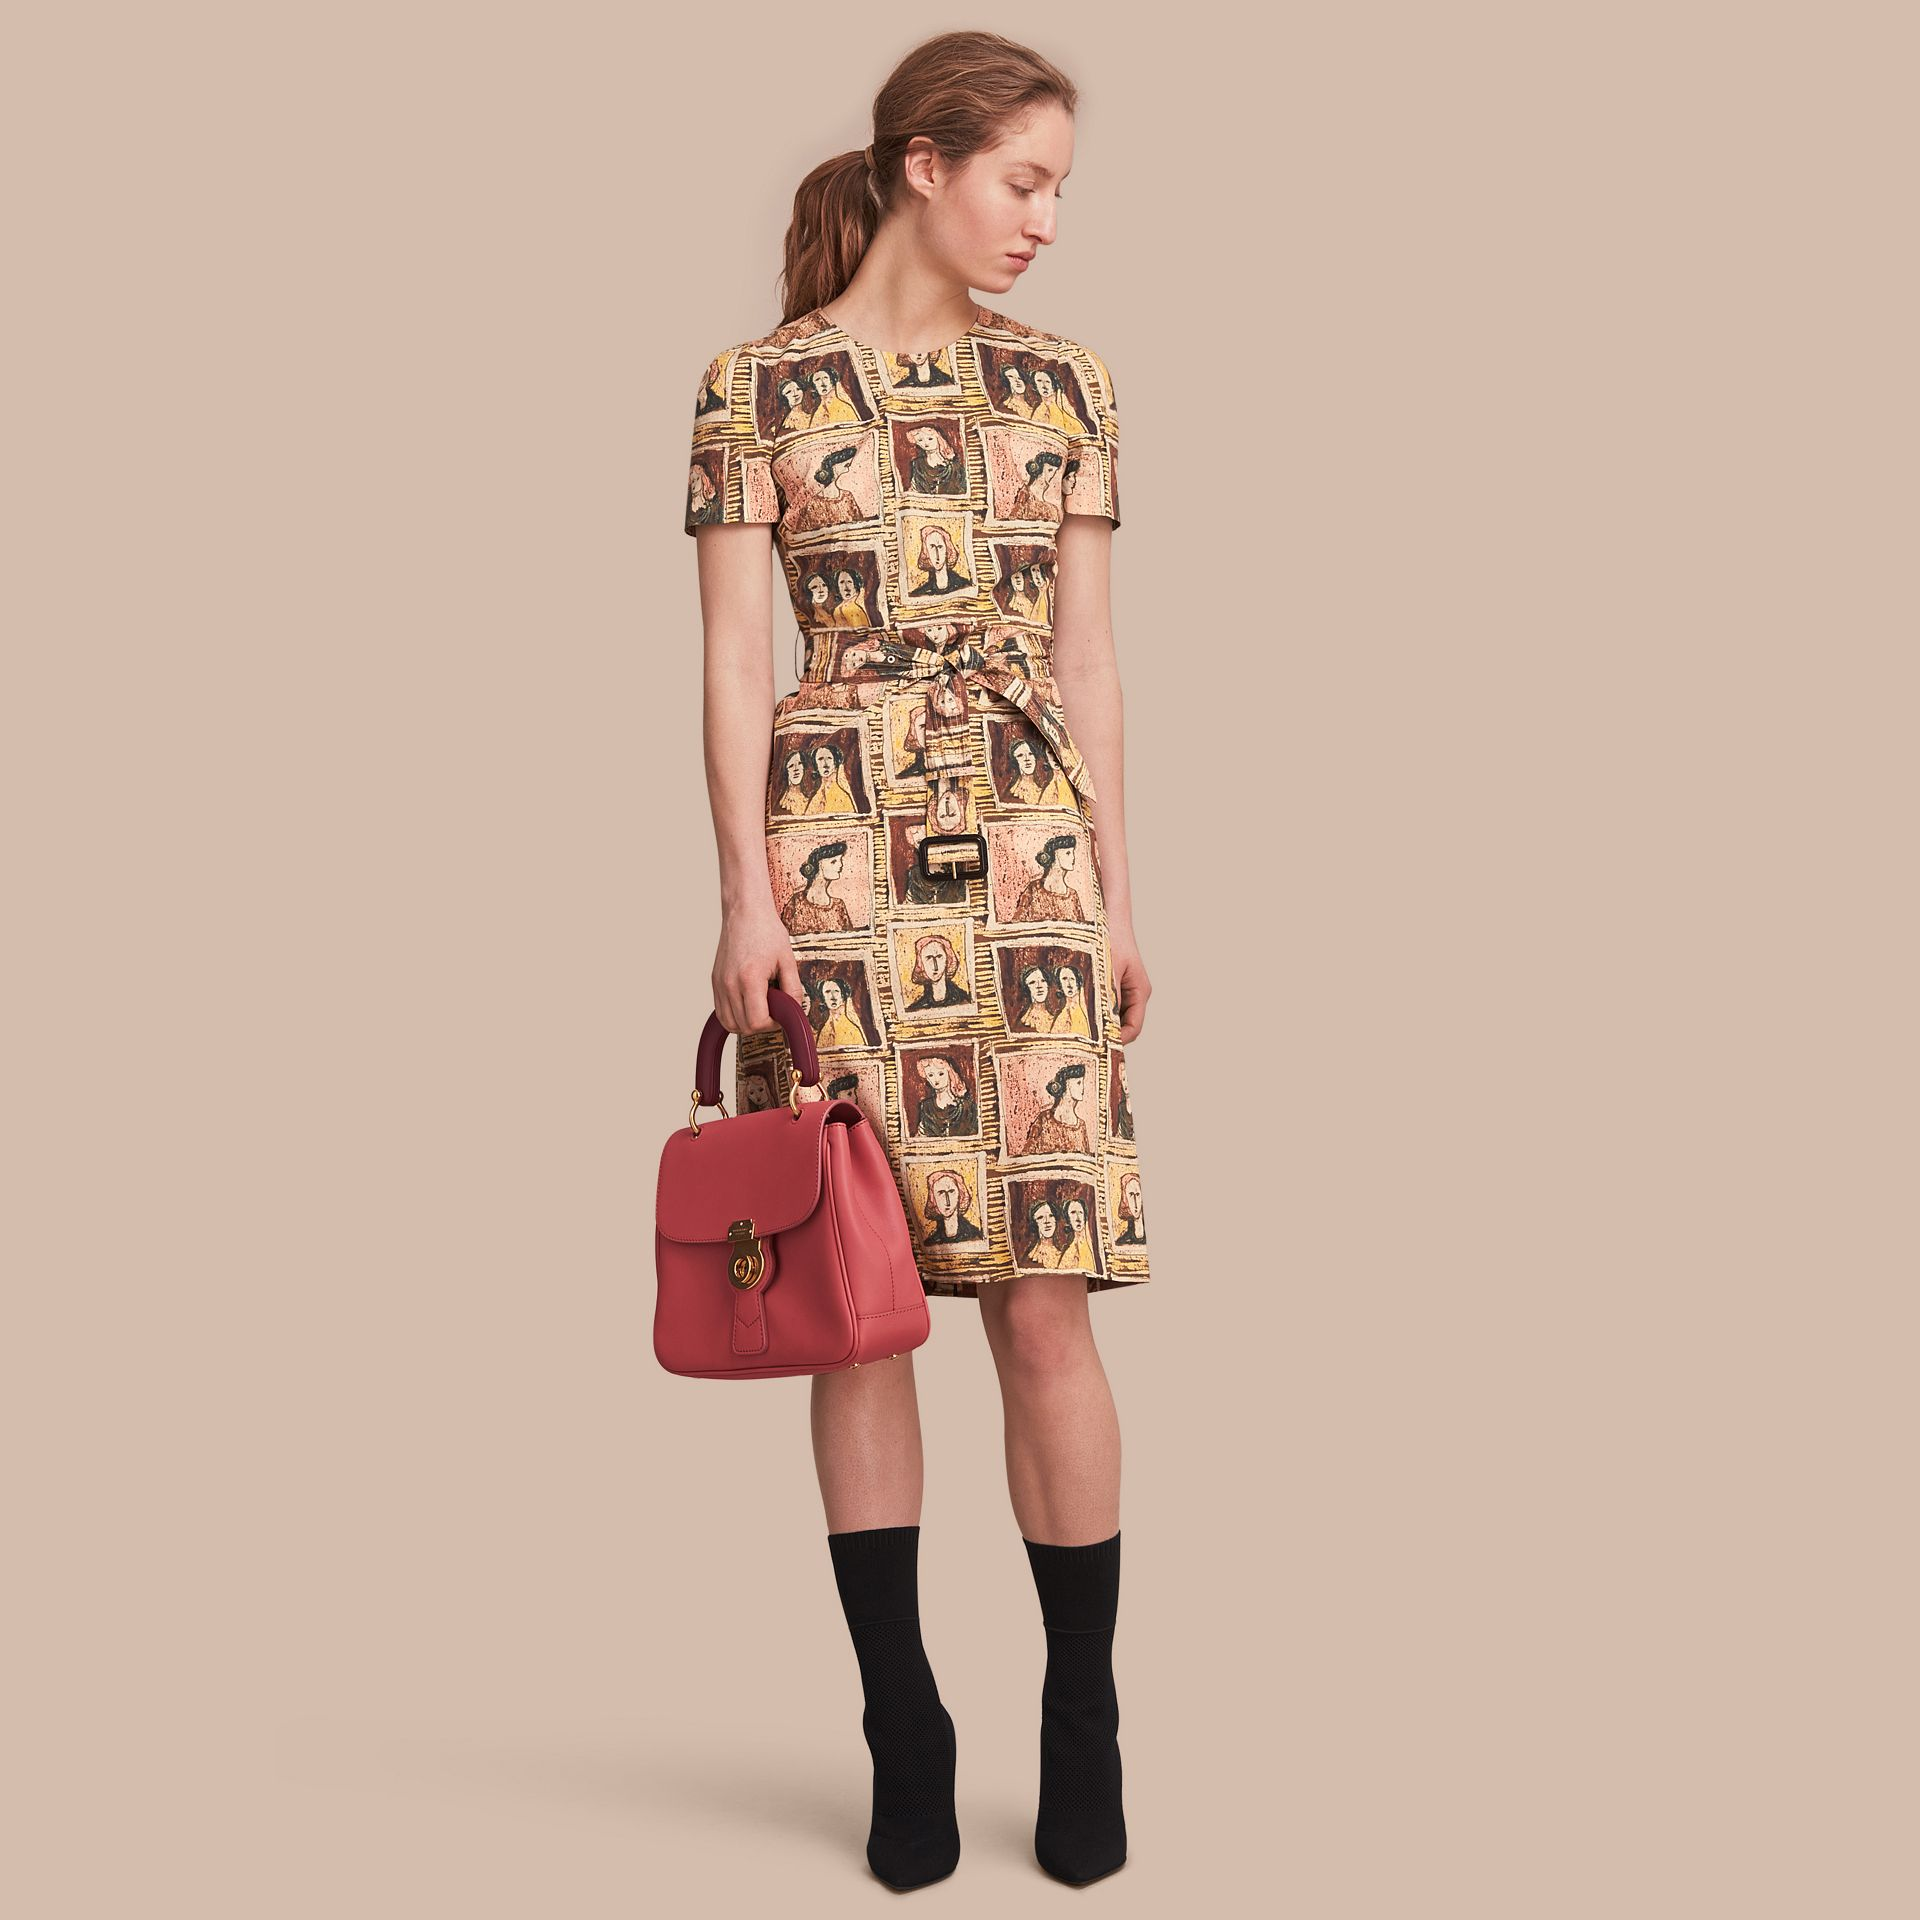 Framed Heads Print Cotton Shift Dress in Umber Brown - Women | Burberry - gallery image 1